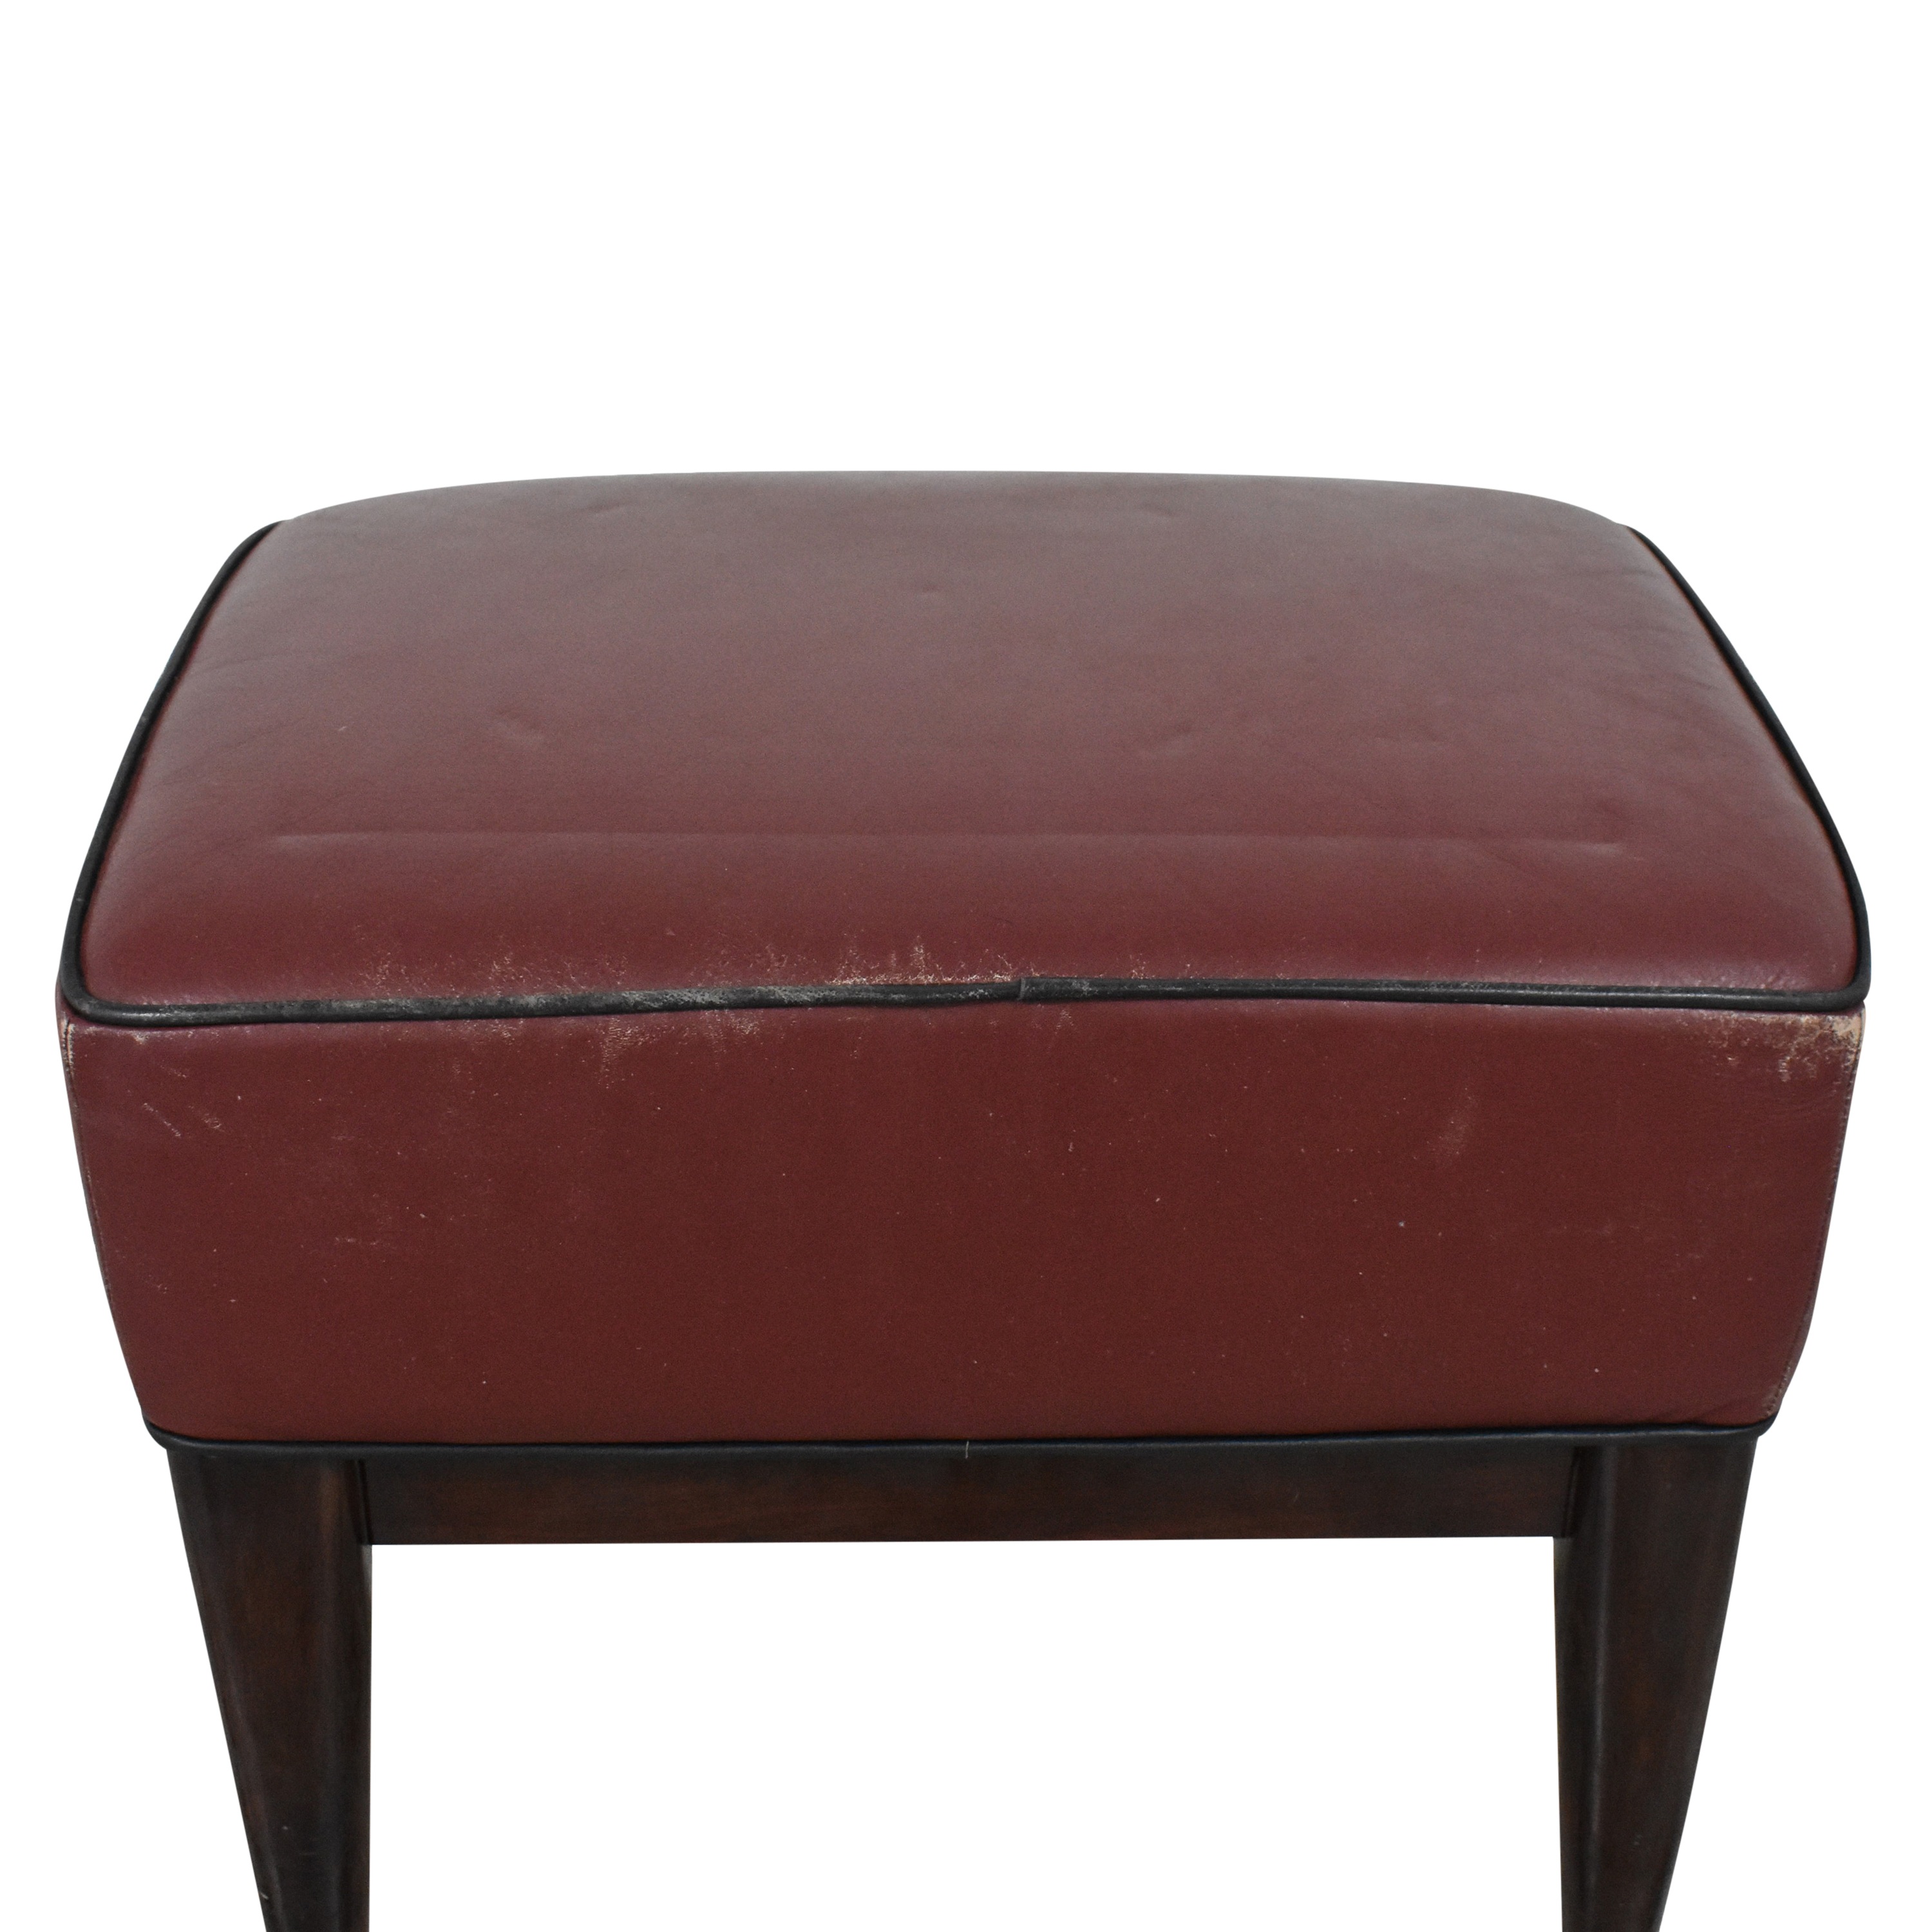 Pace Collection i4Mariani for Pace Collection Ottoman used